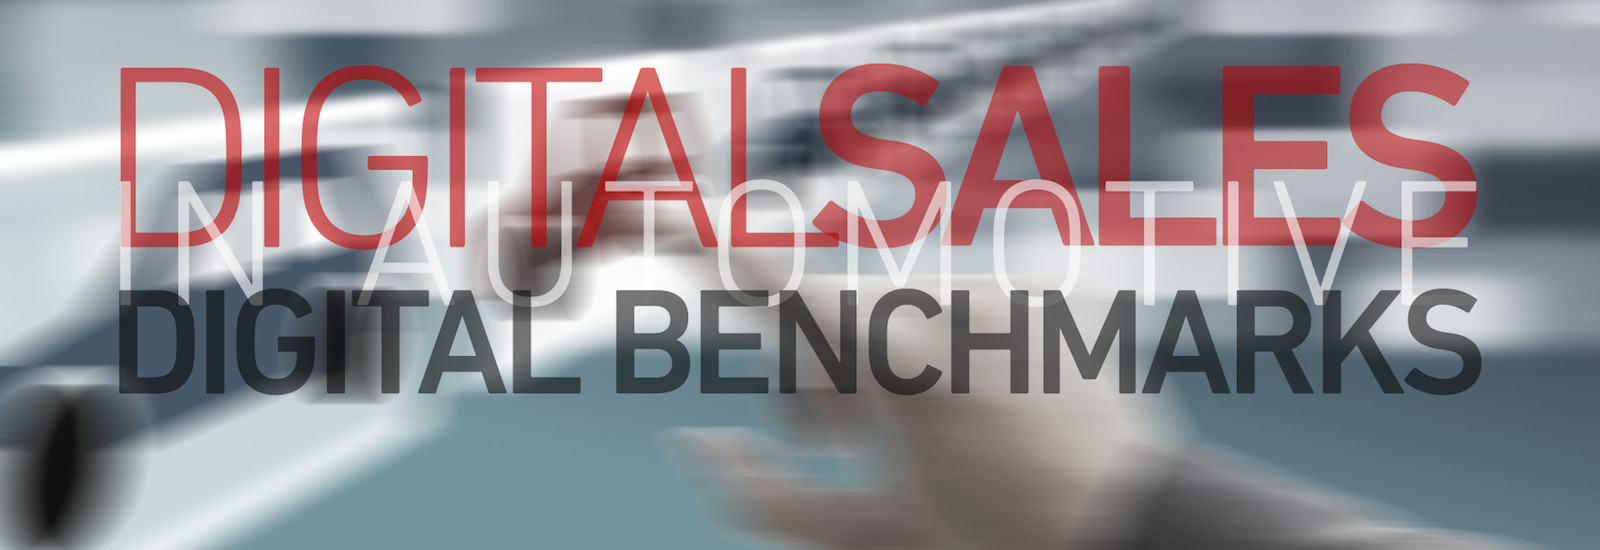 Digital Sales Digital Benchmarks